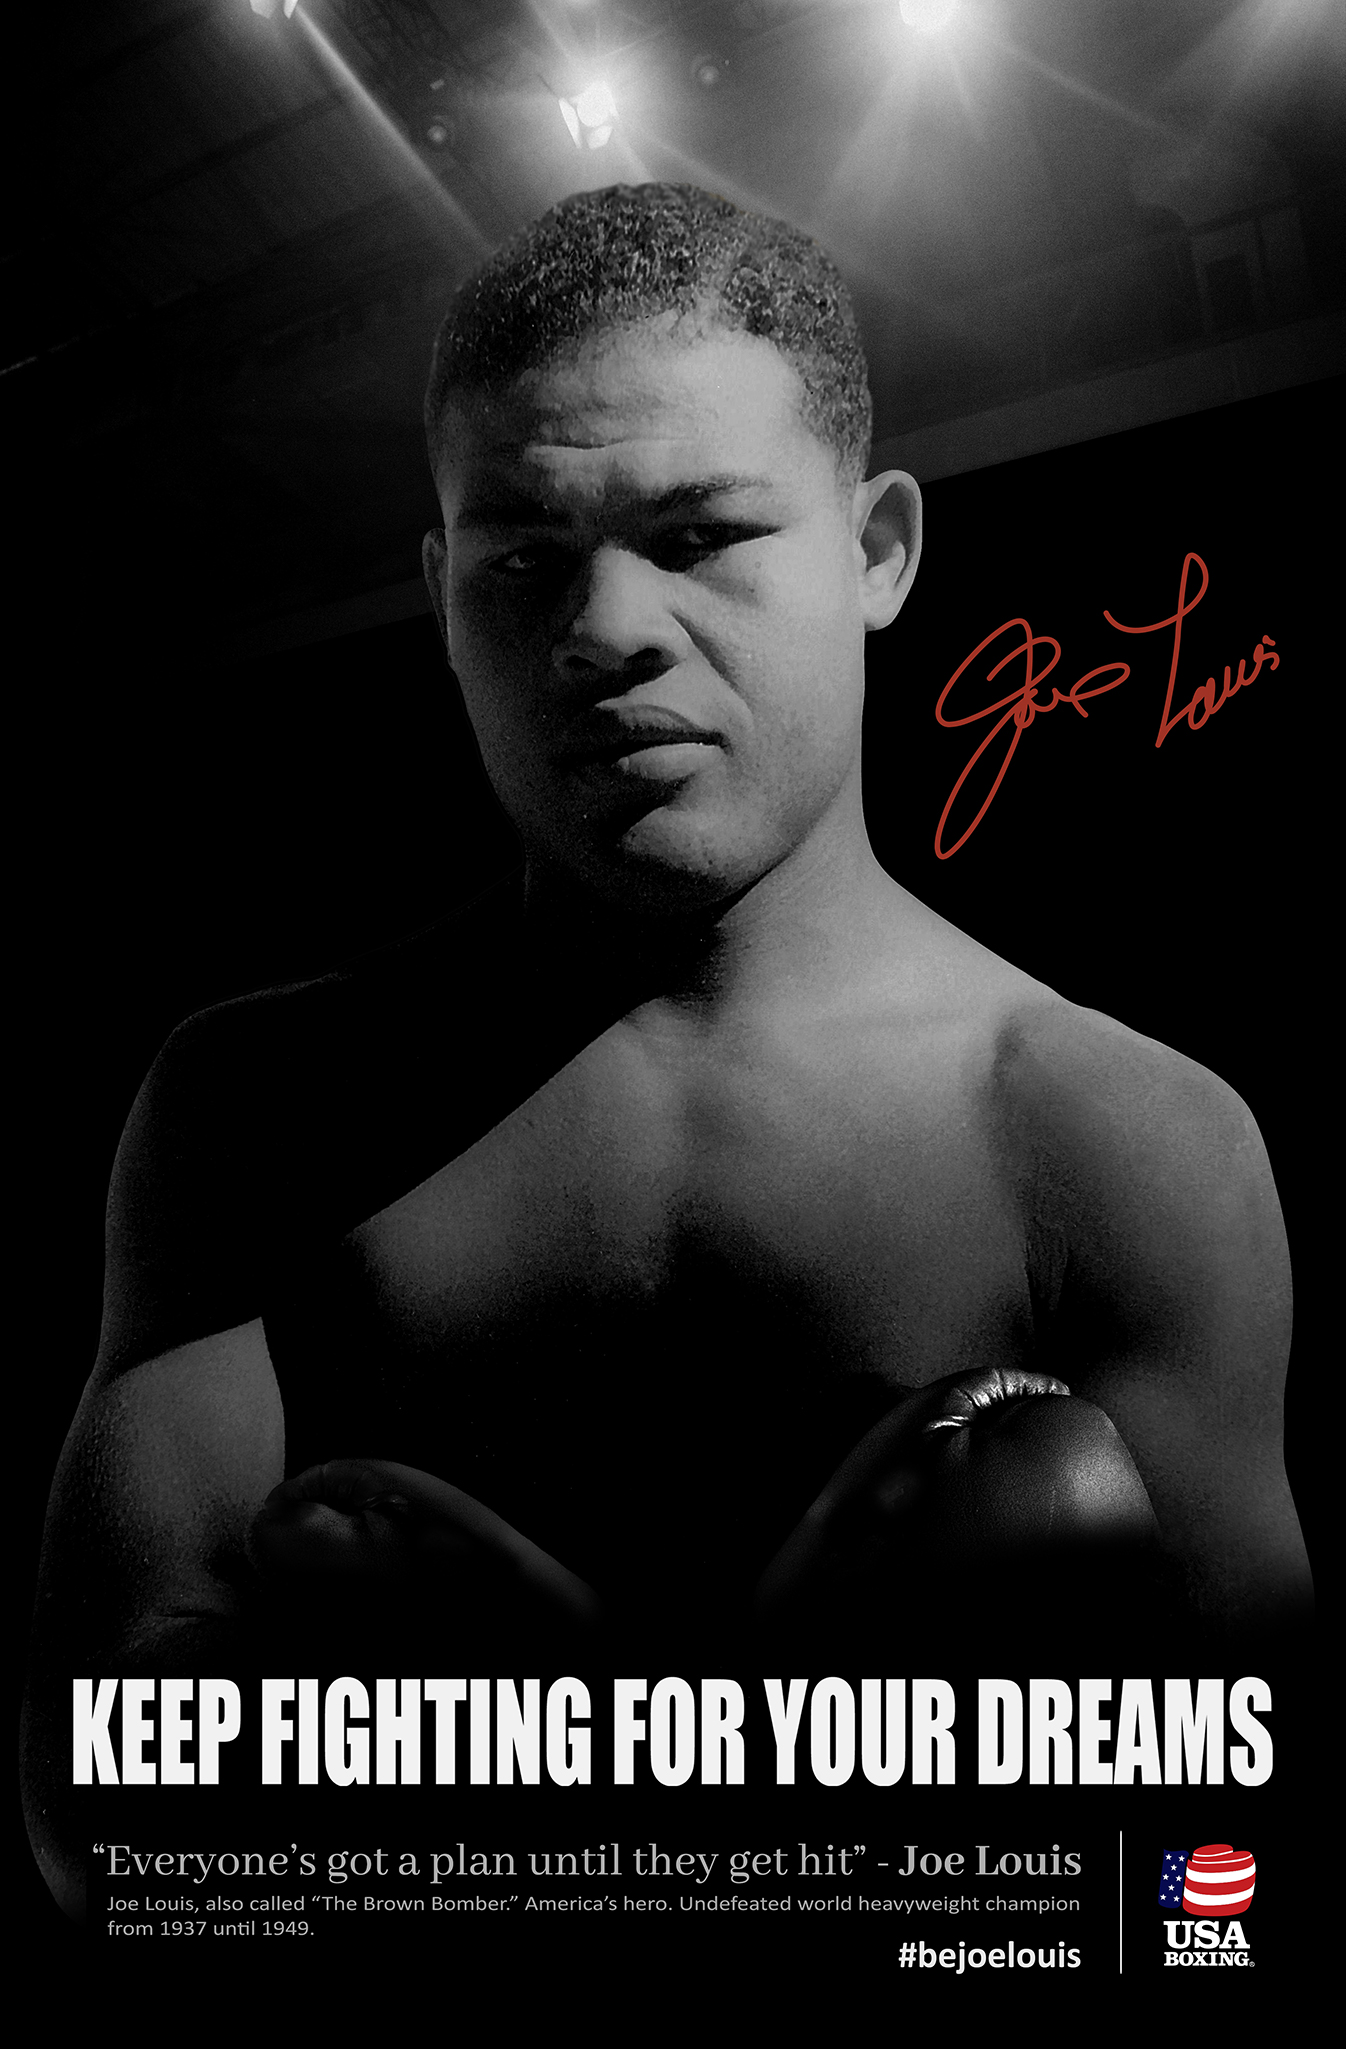 Joe Louis Bourbon - Keep fighting for your dreams poster - USA Boxing